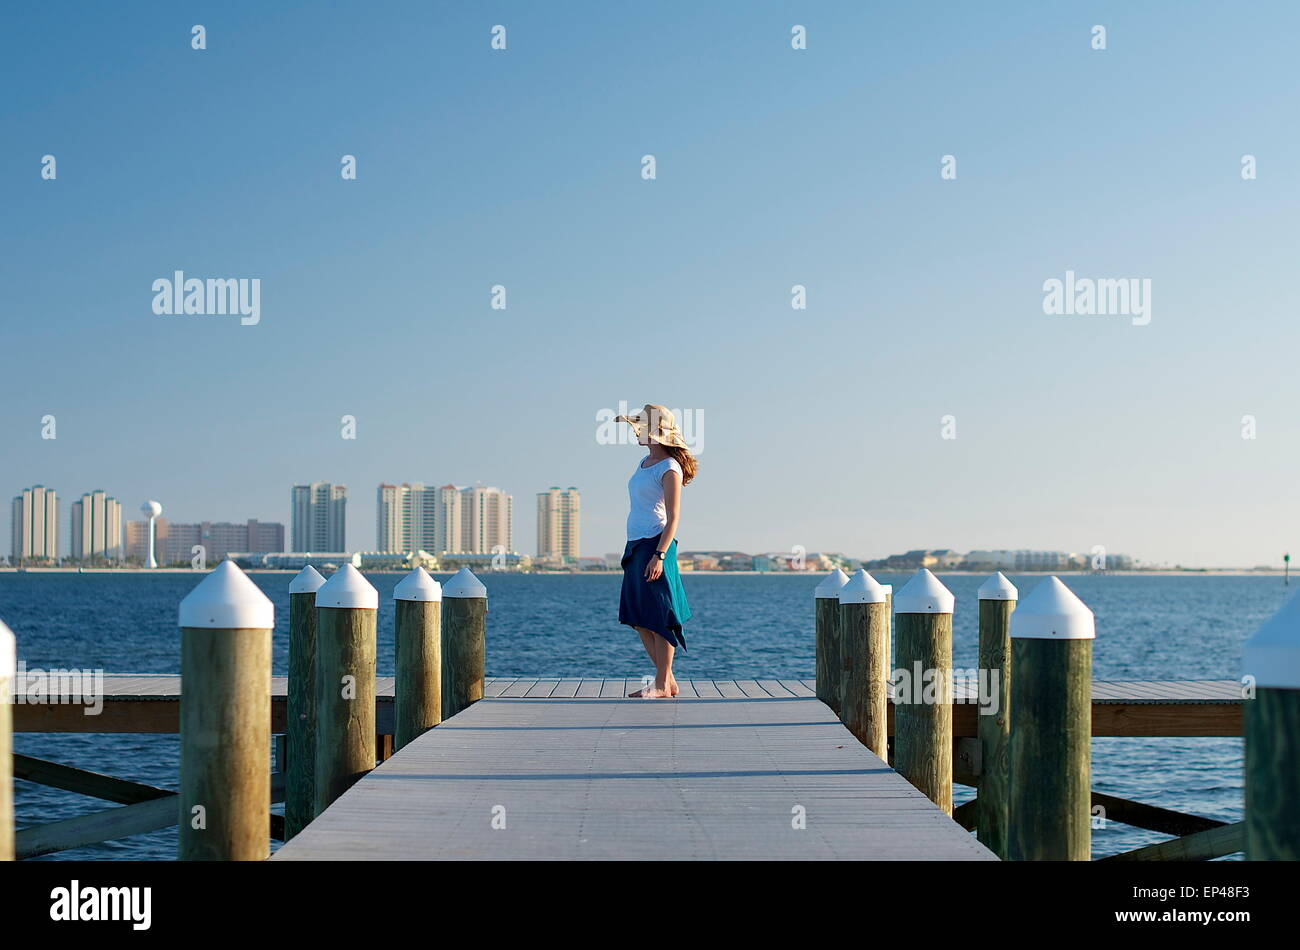 Woman in sun hat standing at the end of a boat dock, Florida, USA - Stock Image